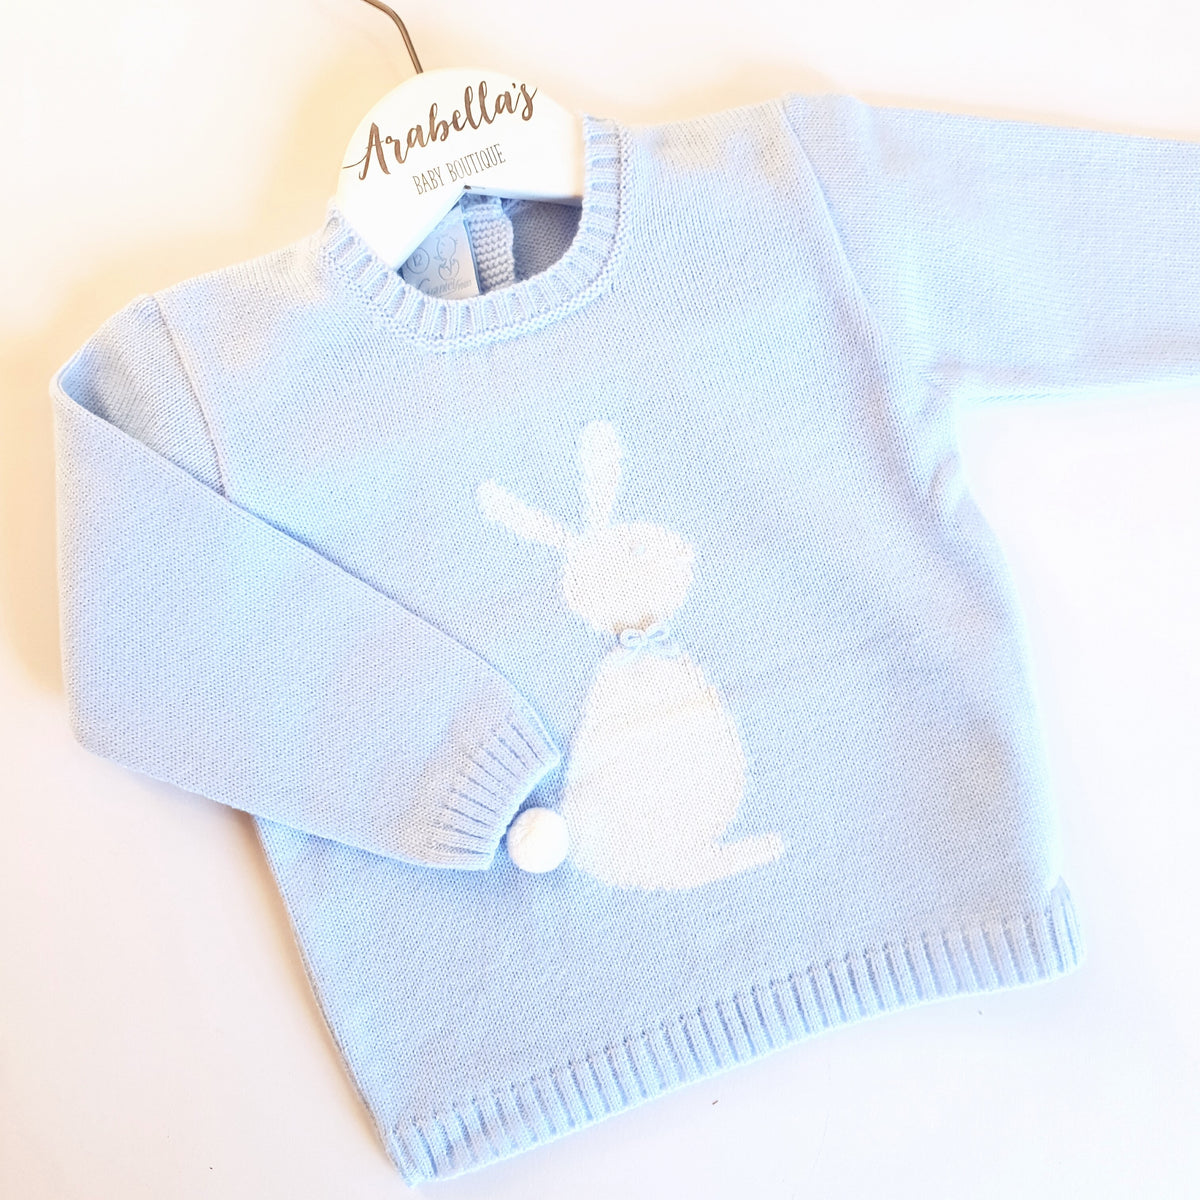 830facc8f Granlei Boys Knitted Bunny Jumper Arabellas Baby Boutique, Spanish Boys – Arabella's  Baby Boutique